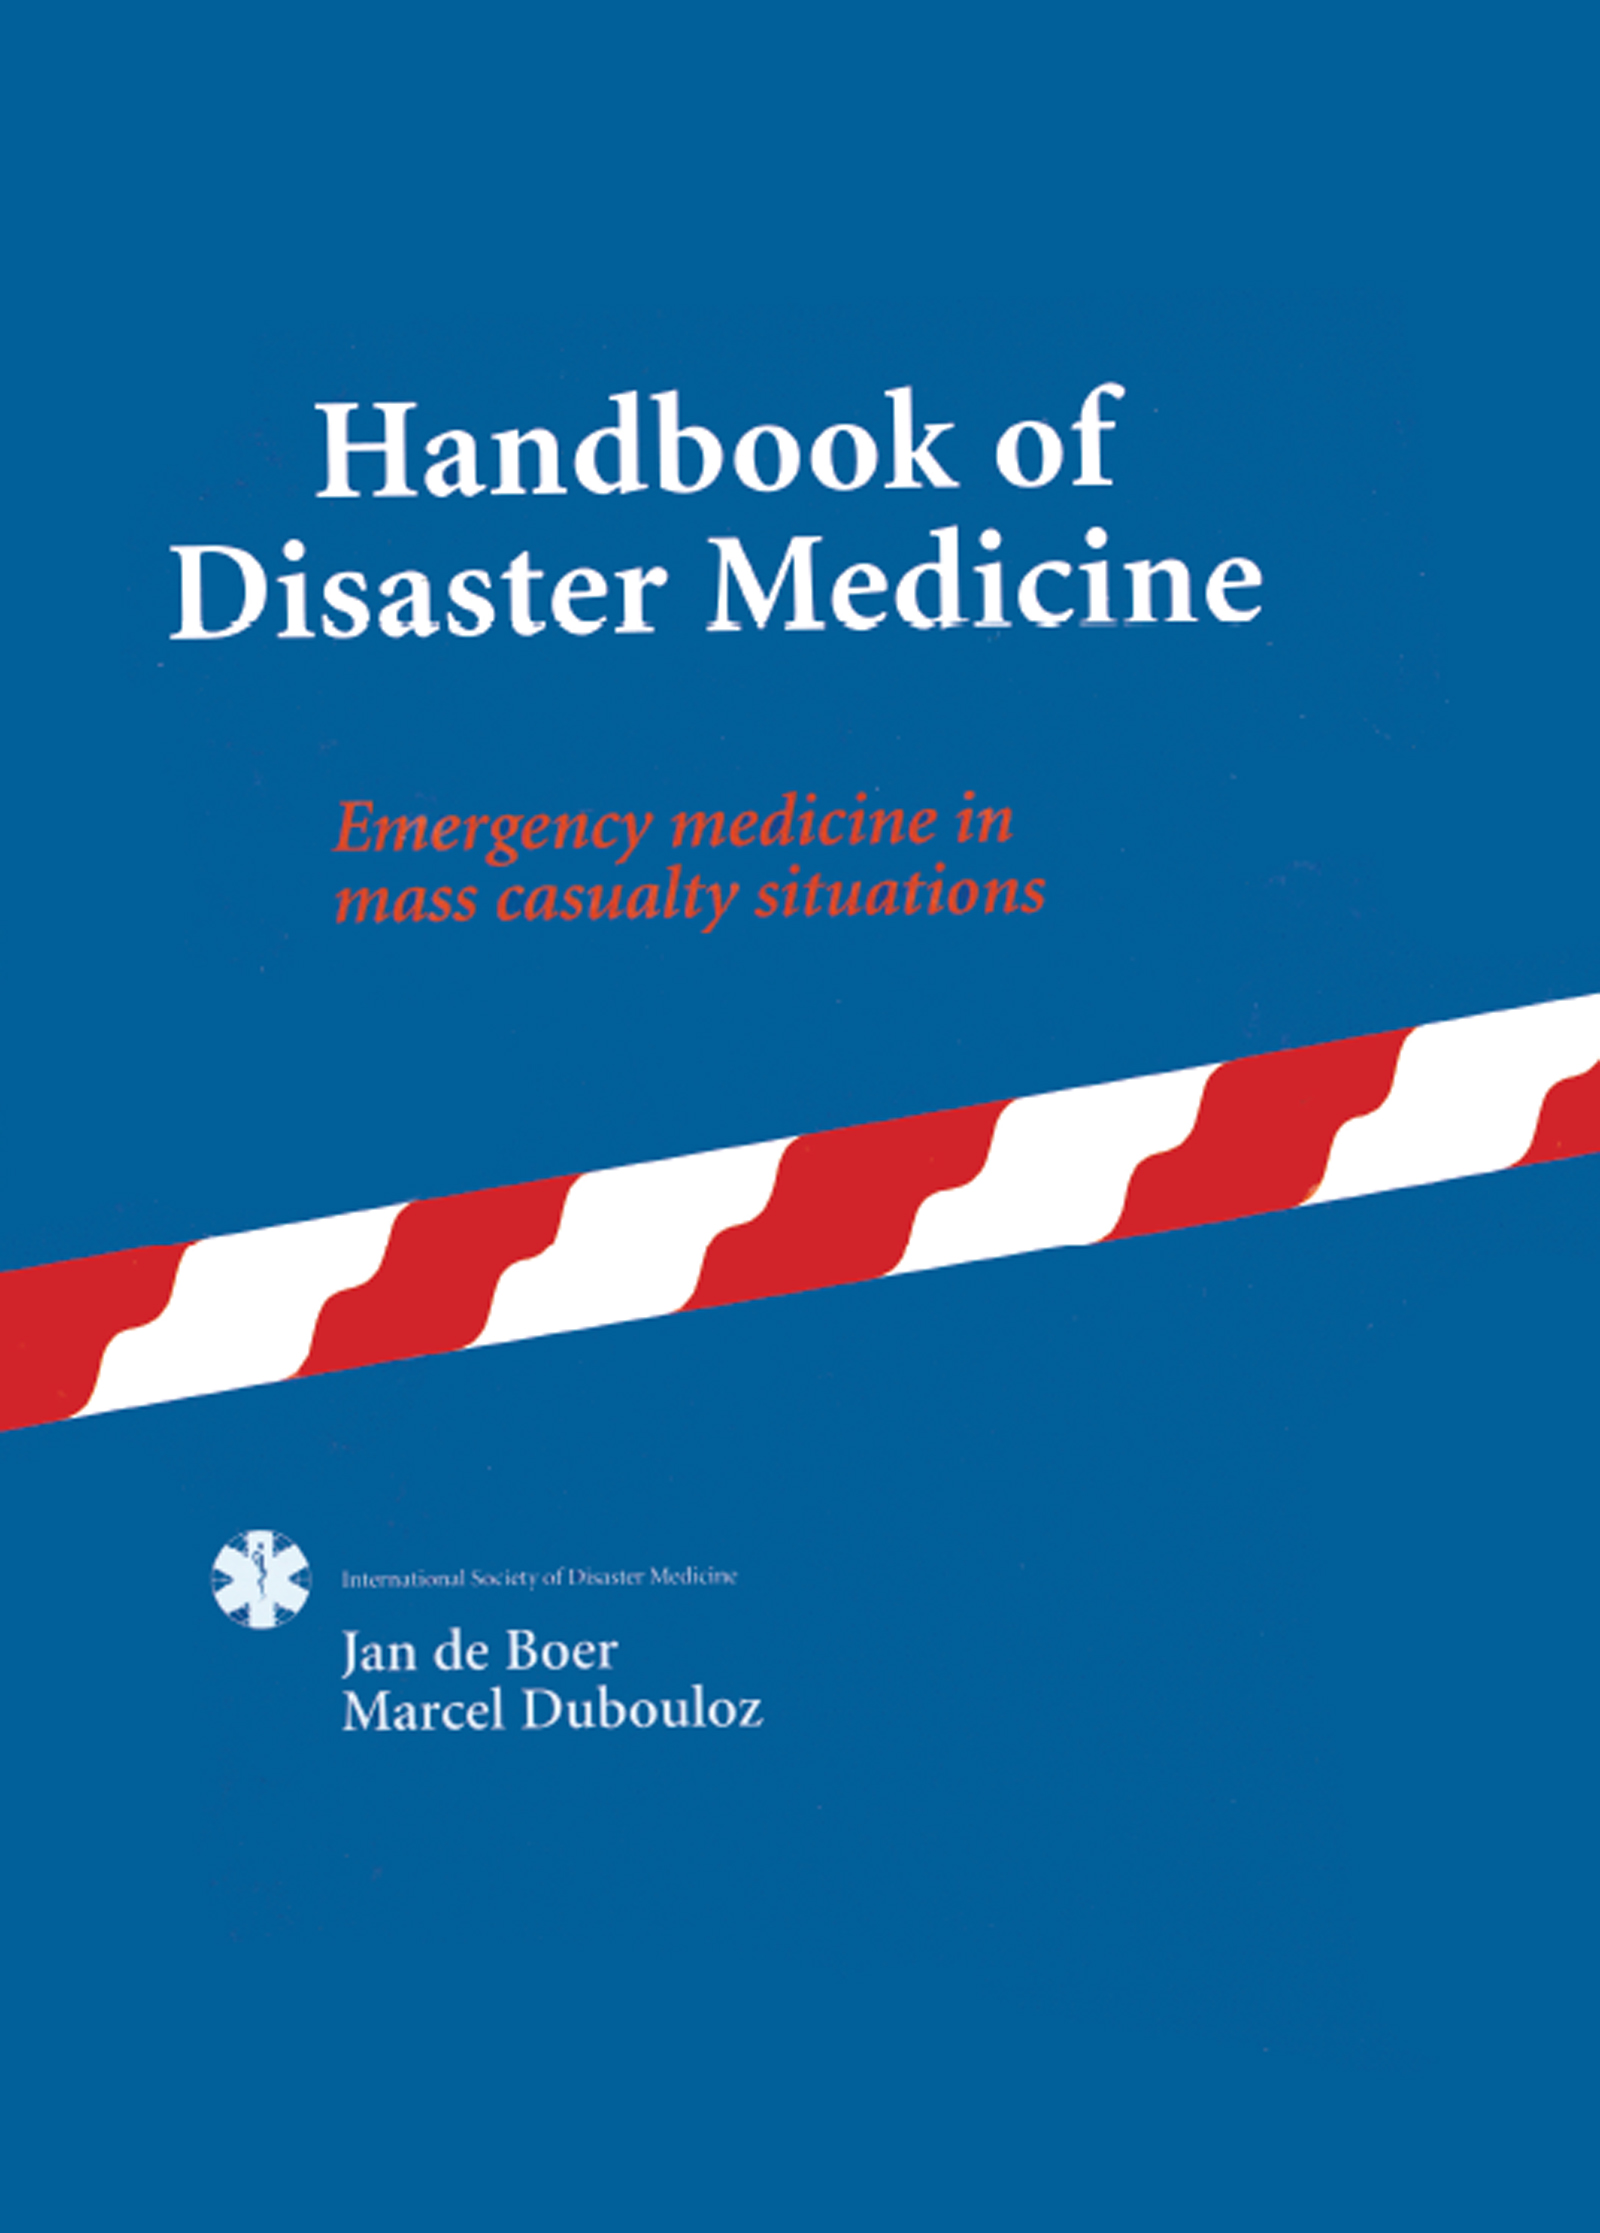 Handbook of Disaster Medicine